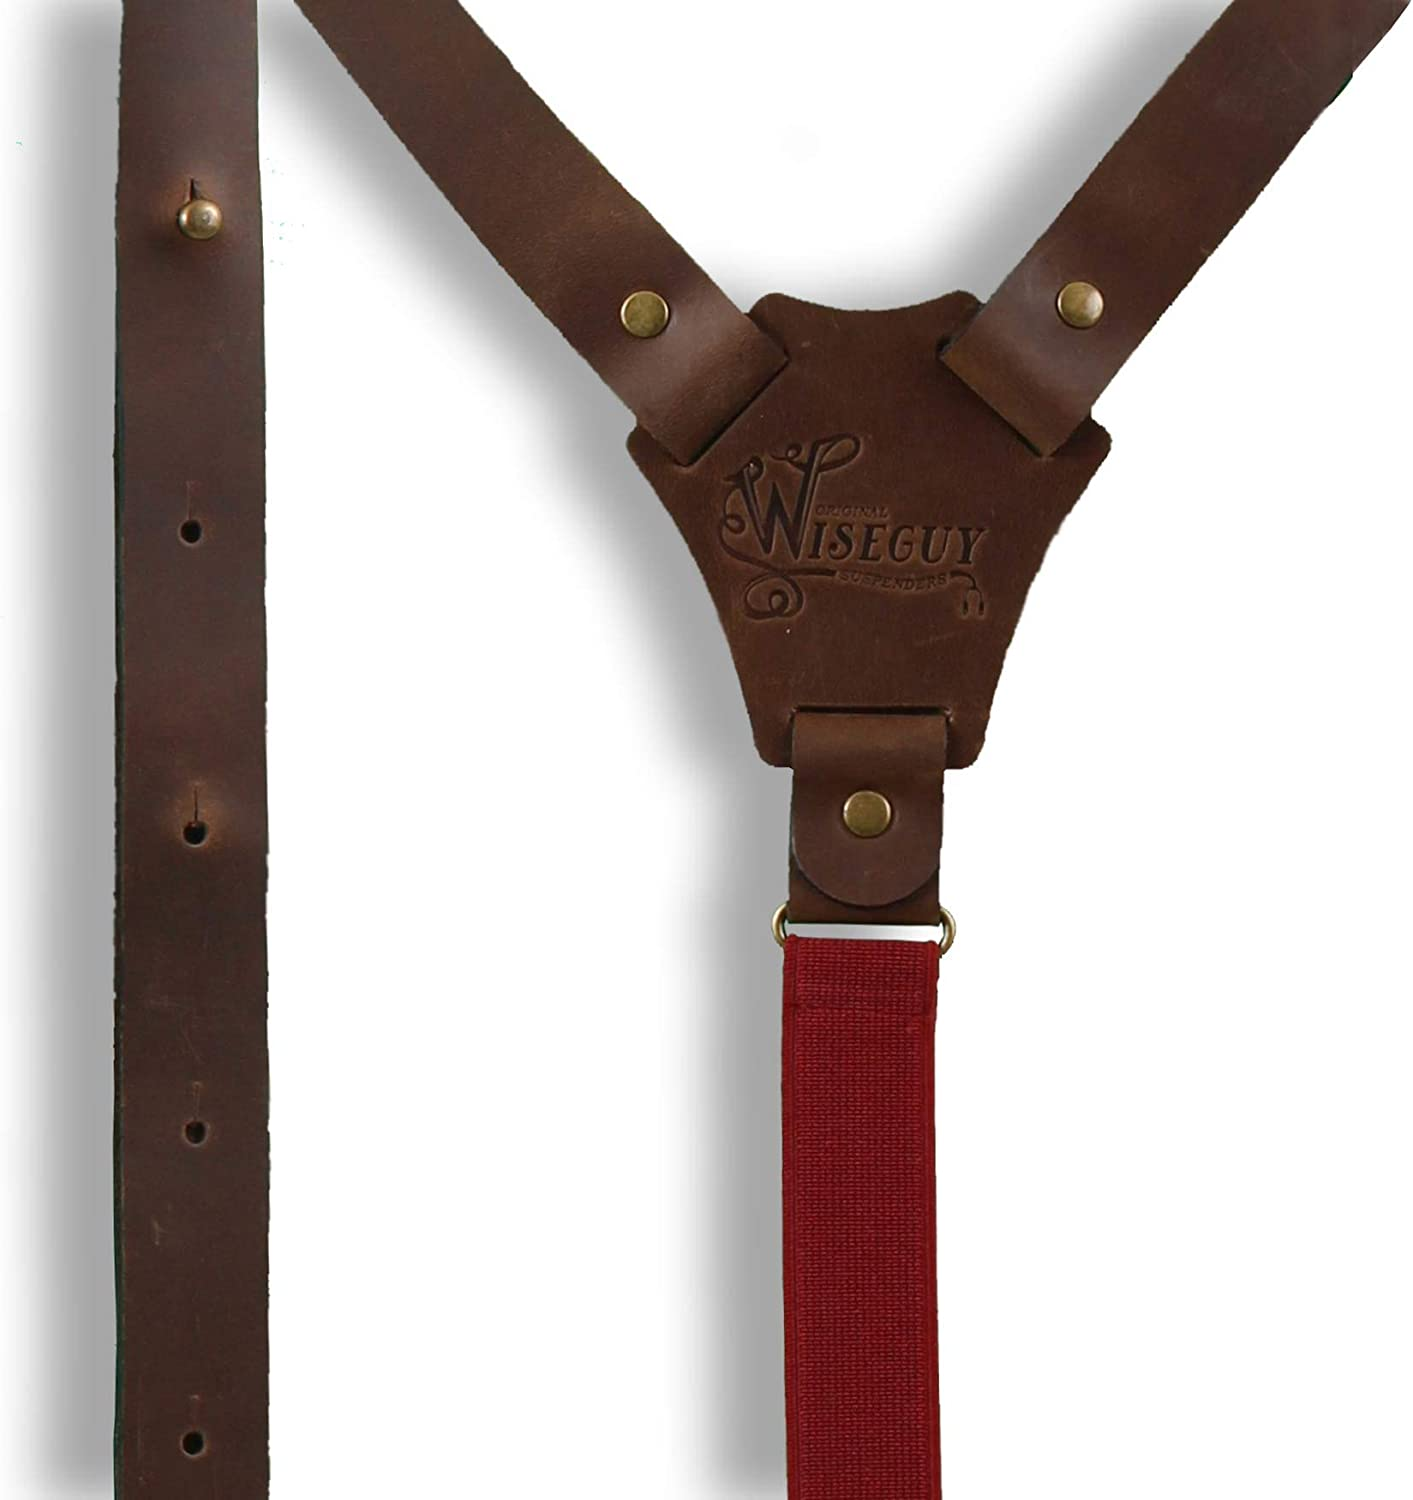 Wiseguy Flex Brown Leather with Elastic Burgundy Y Back strap 1 inch wide and adjustable Elastic Back Strap Suspenders